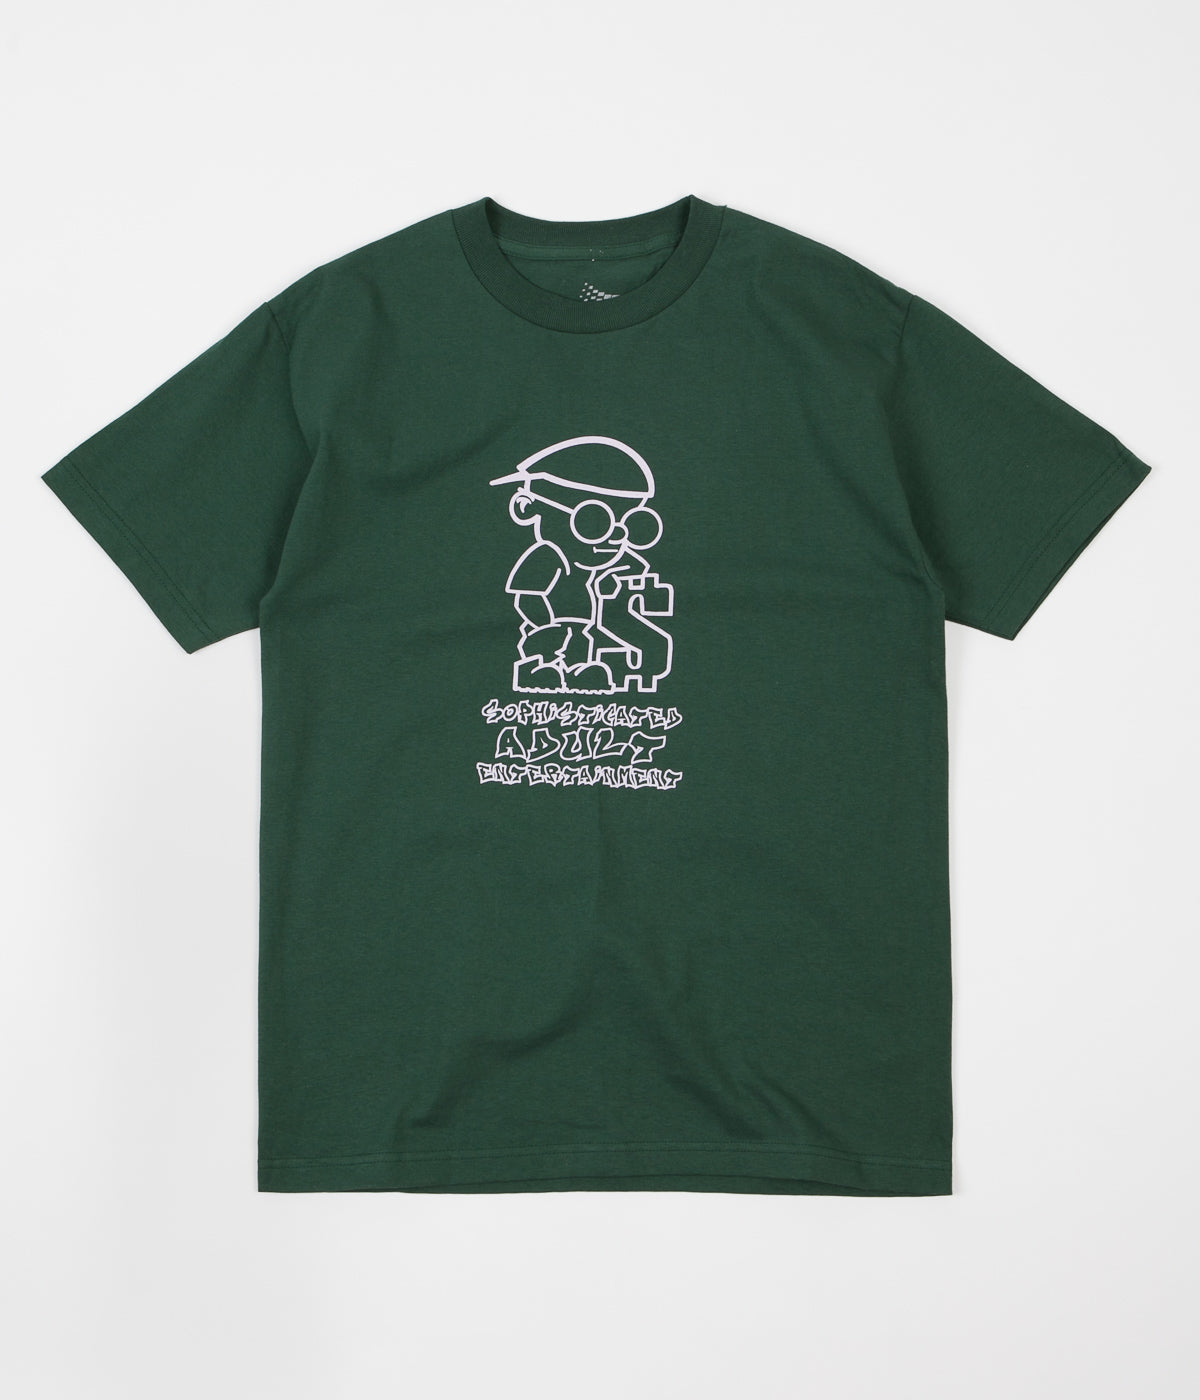 Bronze 56K Sophisticated Guy T-Shirt - Forest Green / Light Pink